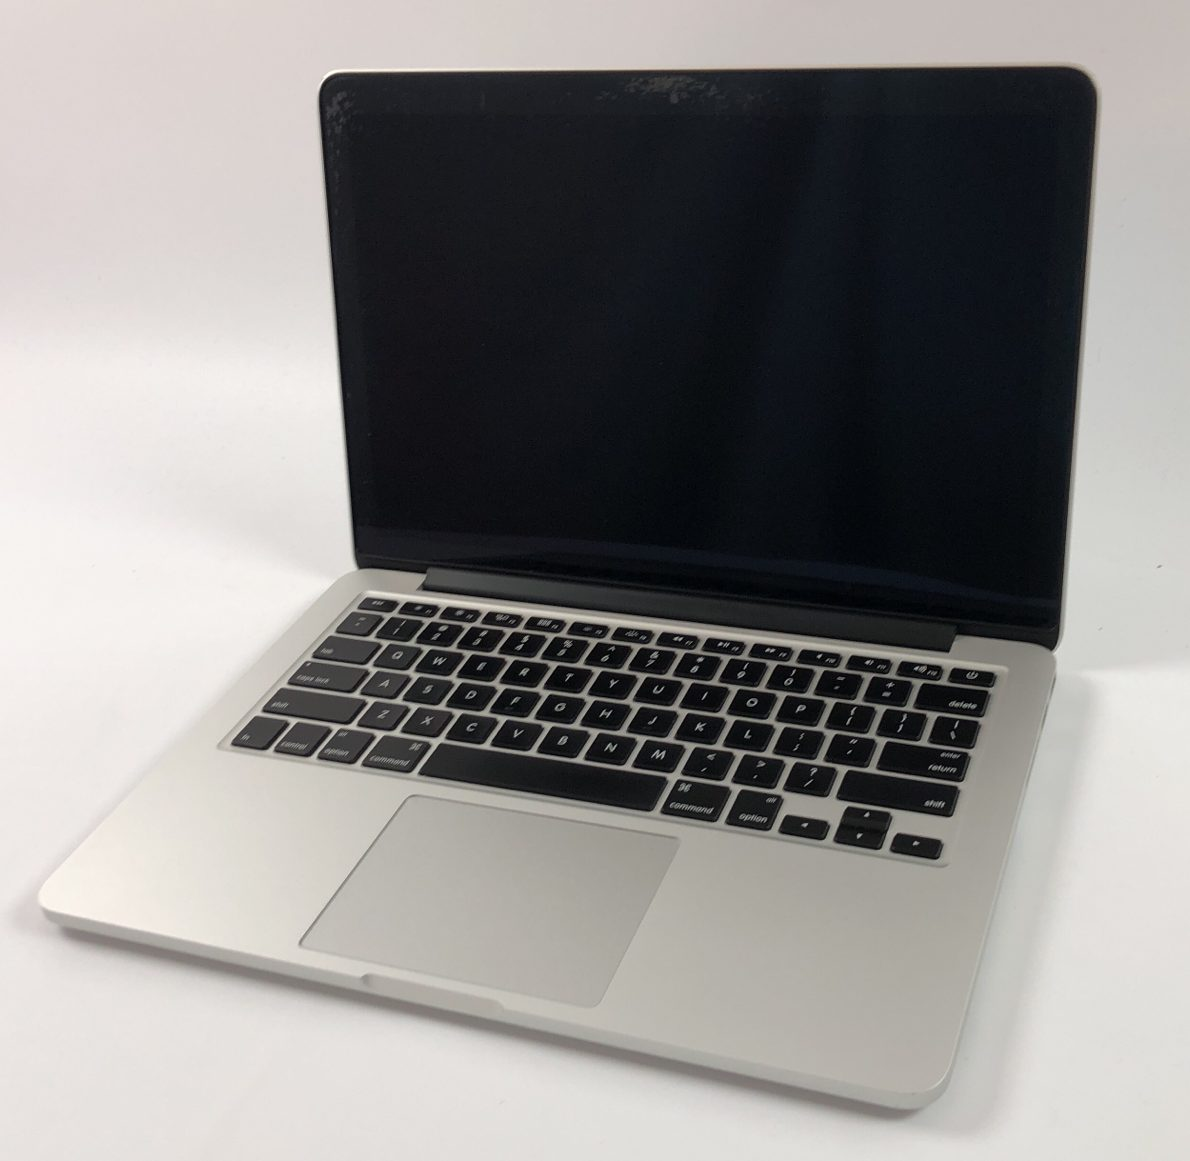 "MacBook Pro Retina 13"" Late 2013 (Intel Core i5 2.4 GHz 8 GB RAM 256 GB SSD), Intel Core i5 2.4 GHz, 8 GB RAM, 256 GB SSD, bild 1"